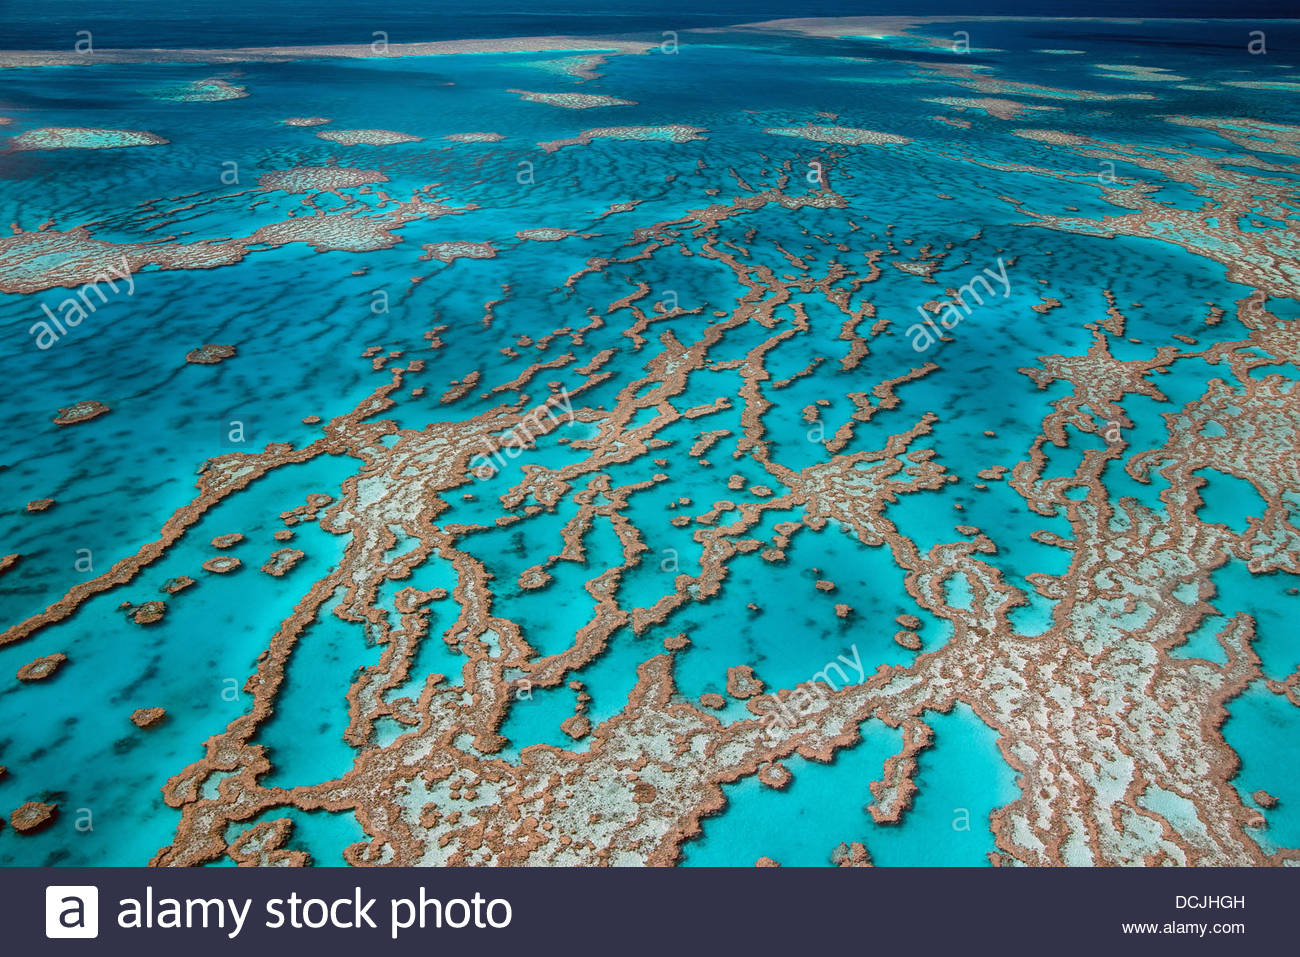 hardy-reef-on-the-great-barrier-reef-whi